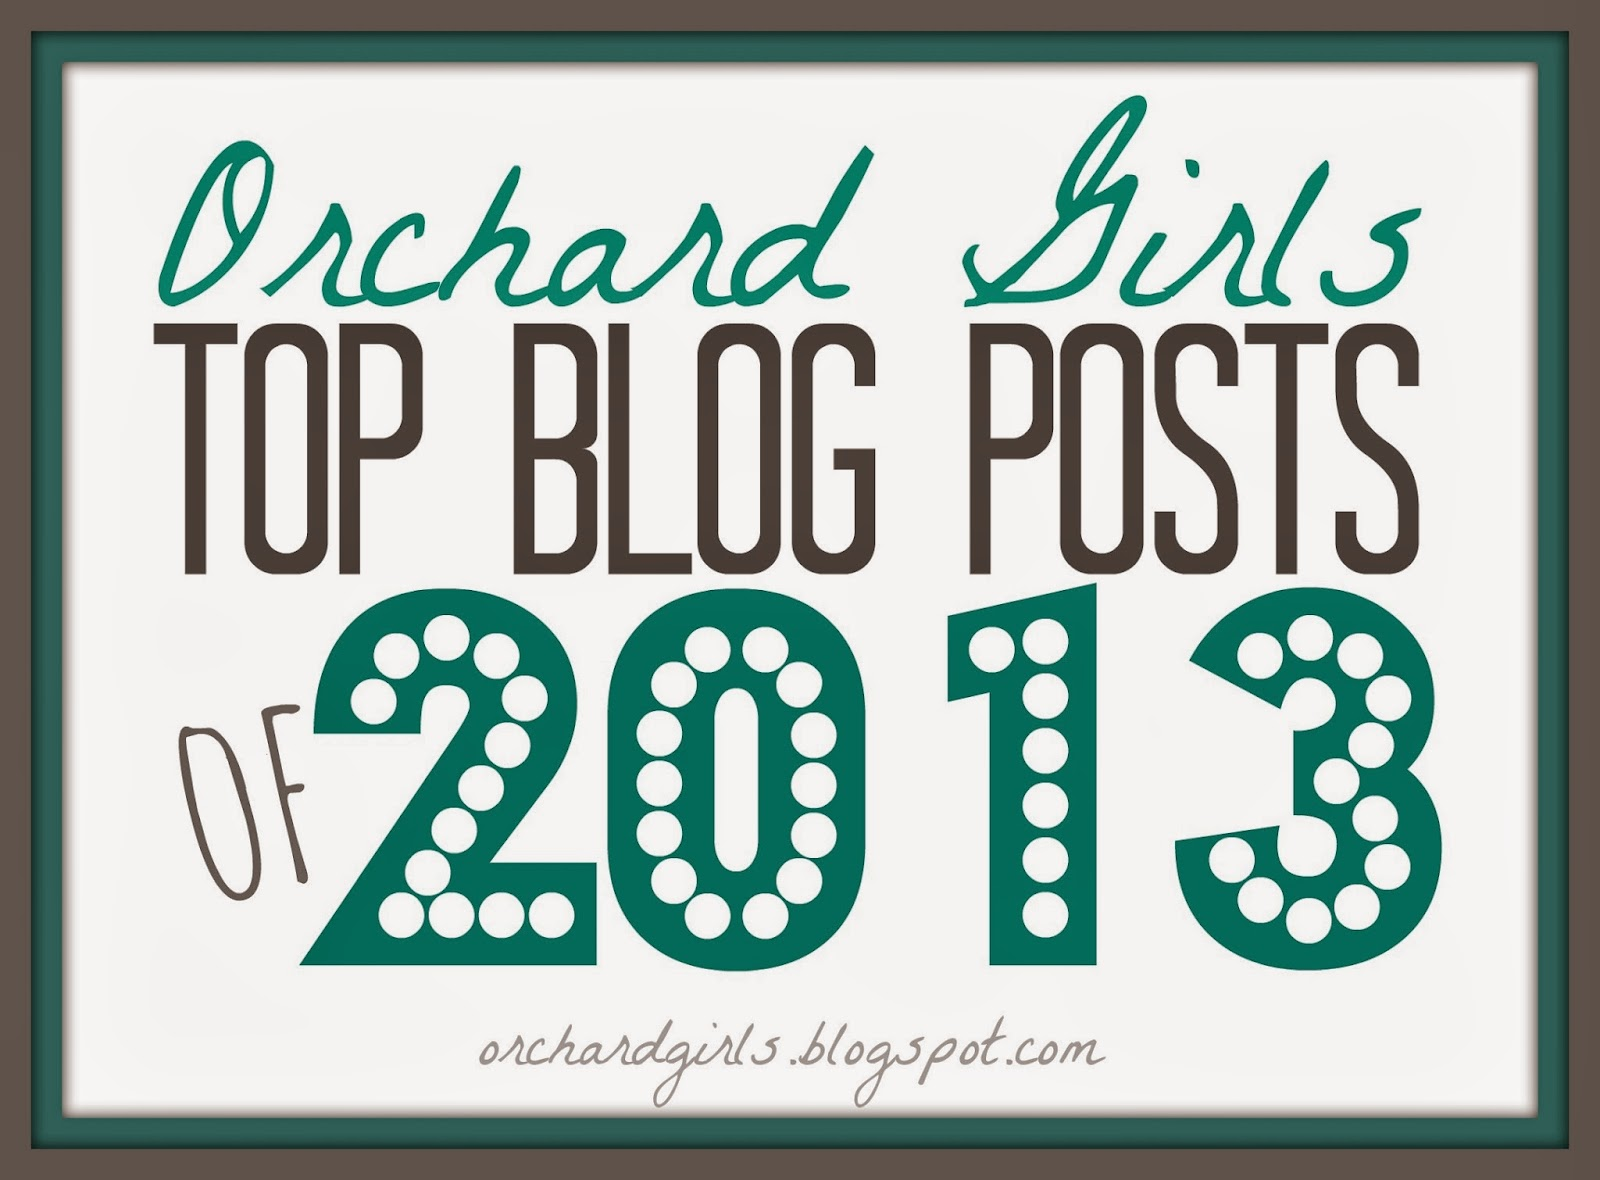 Top Blog Posts of 2013 by Orchardgirls.blogspot.com